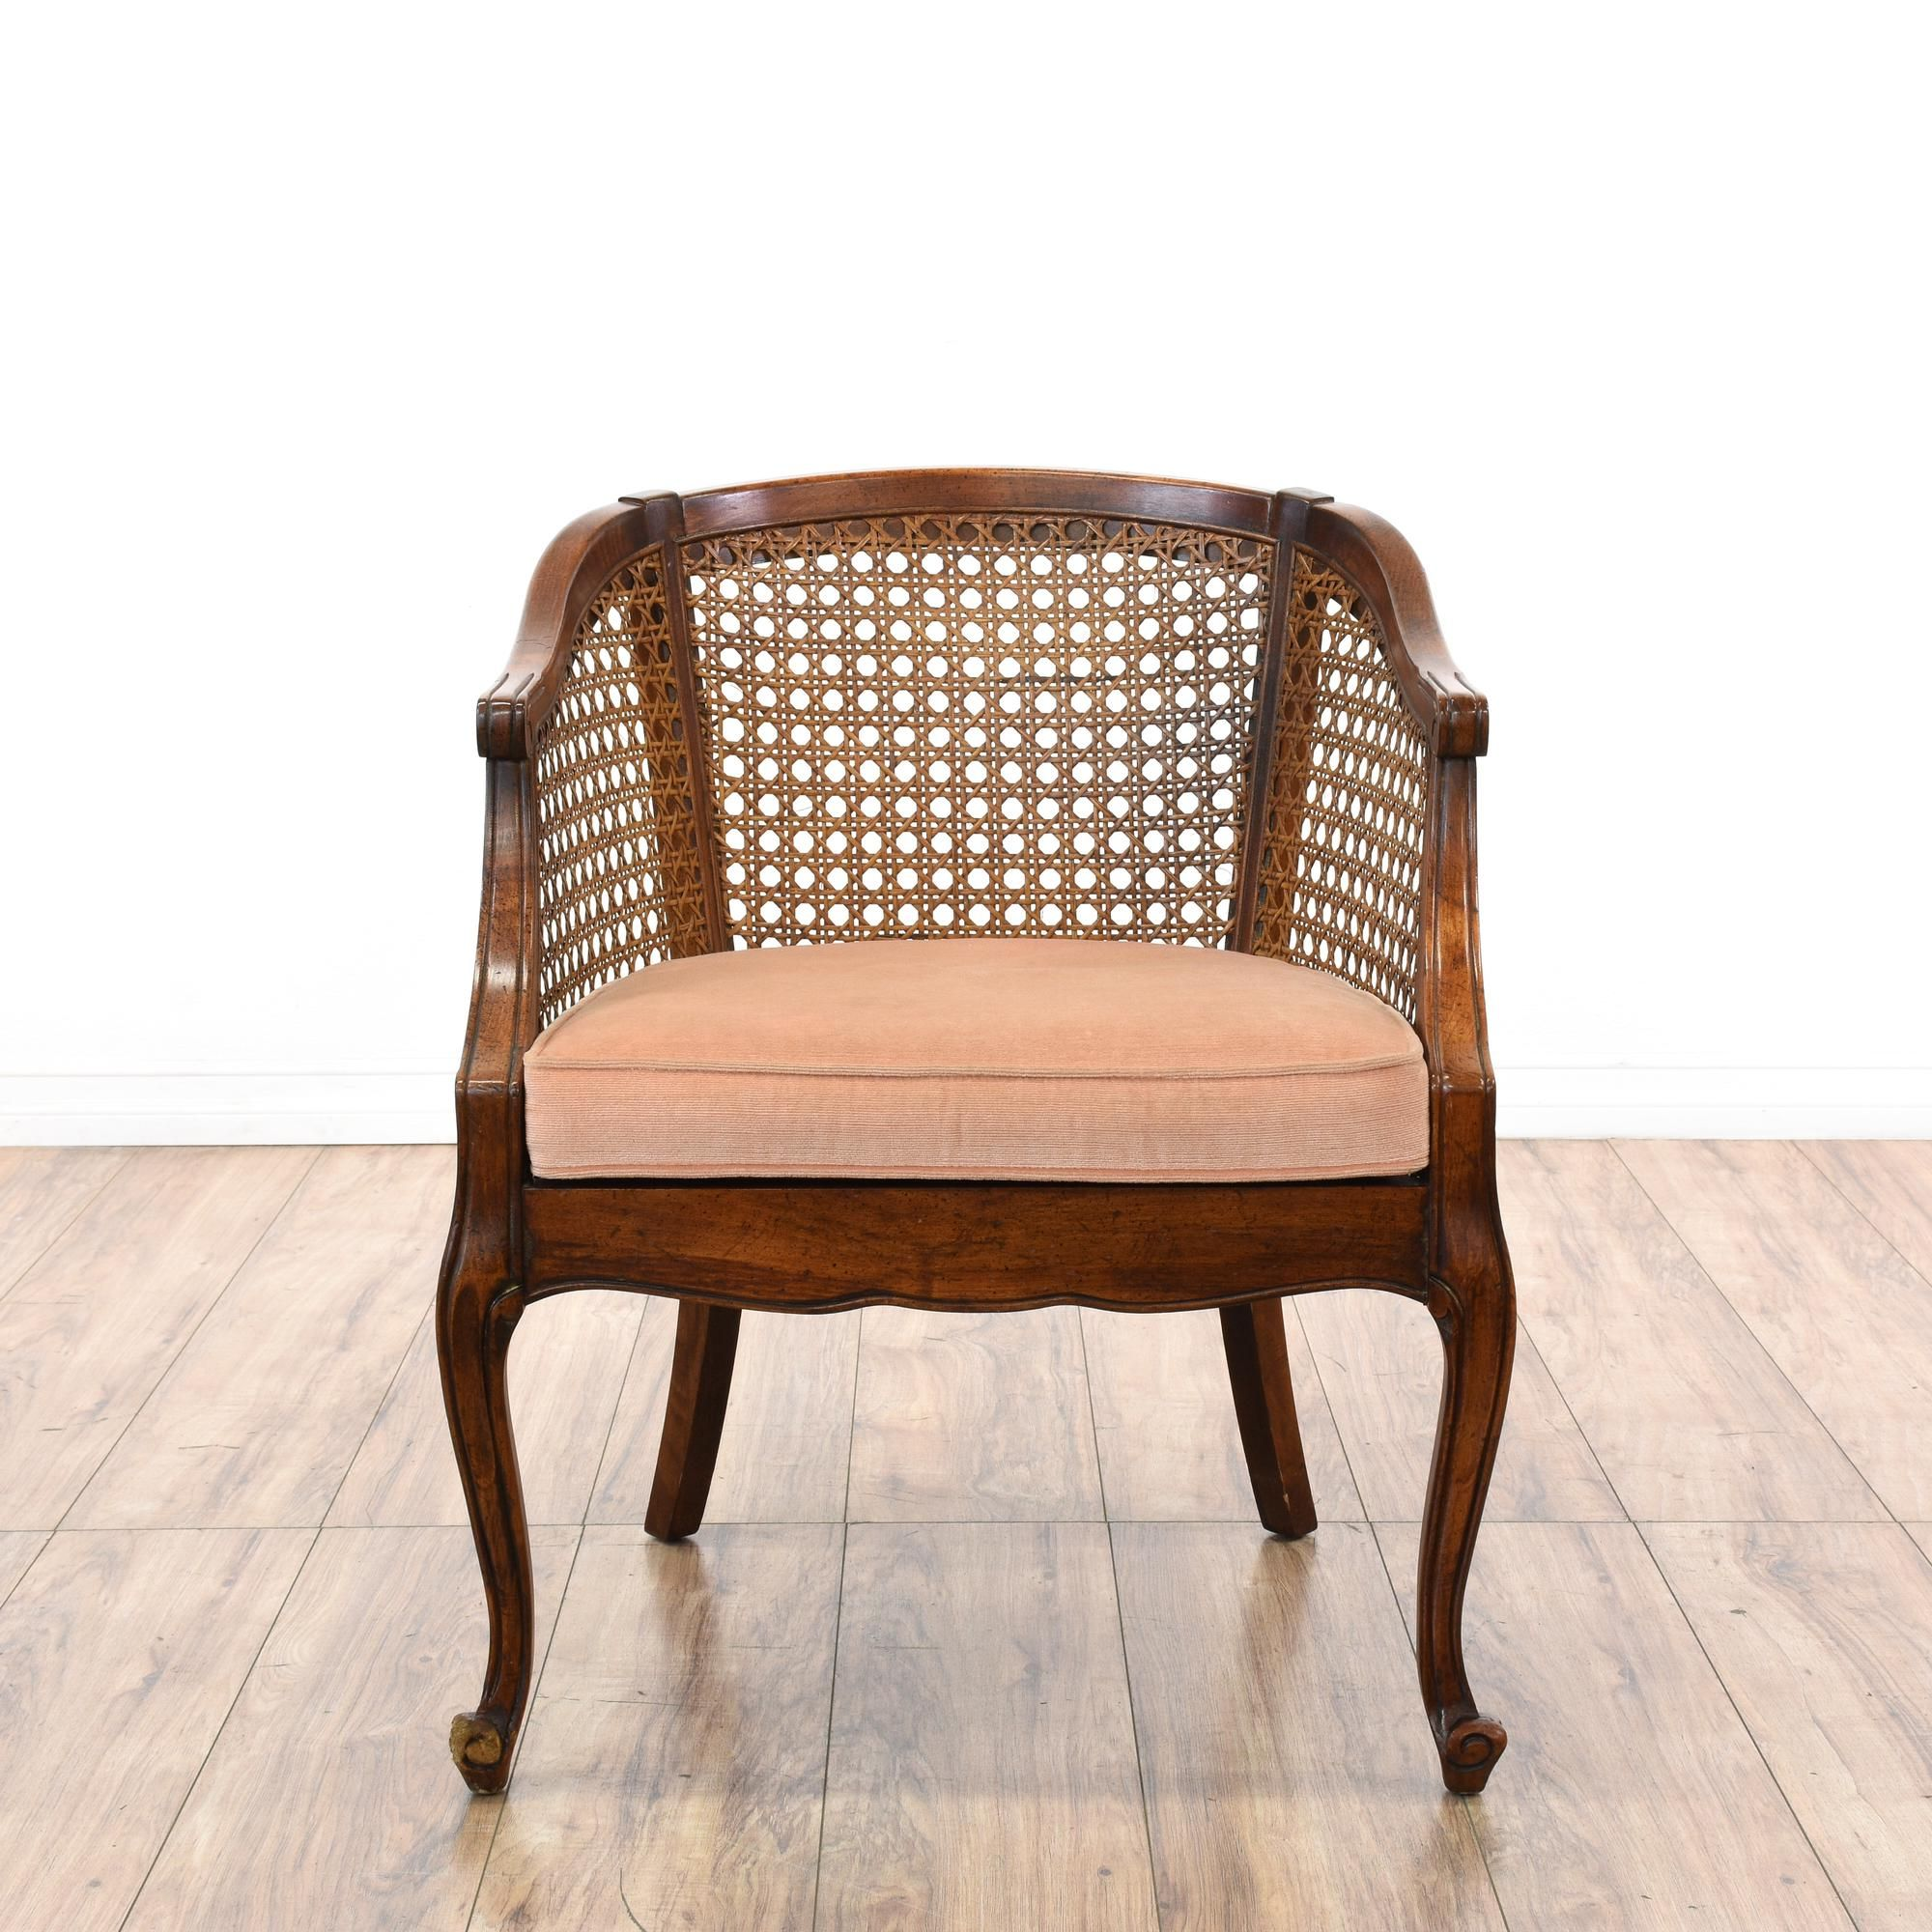 This pair of barrel back chairs are featured in a solid wood with